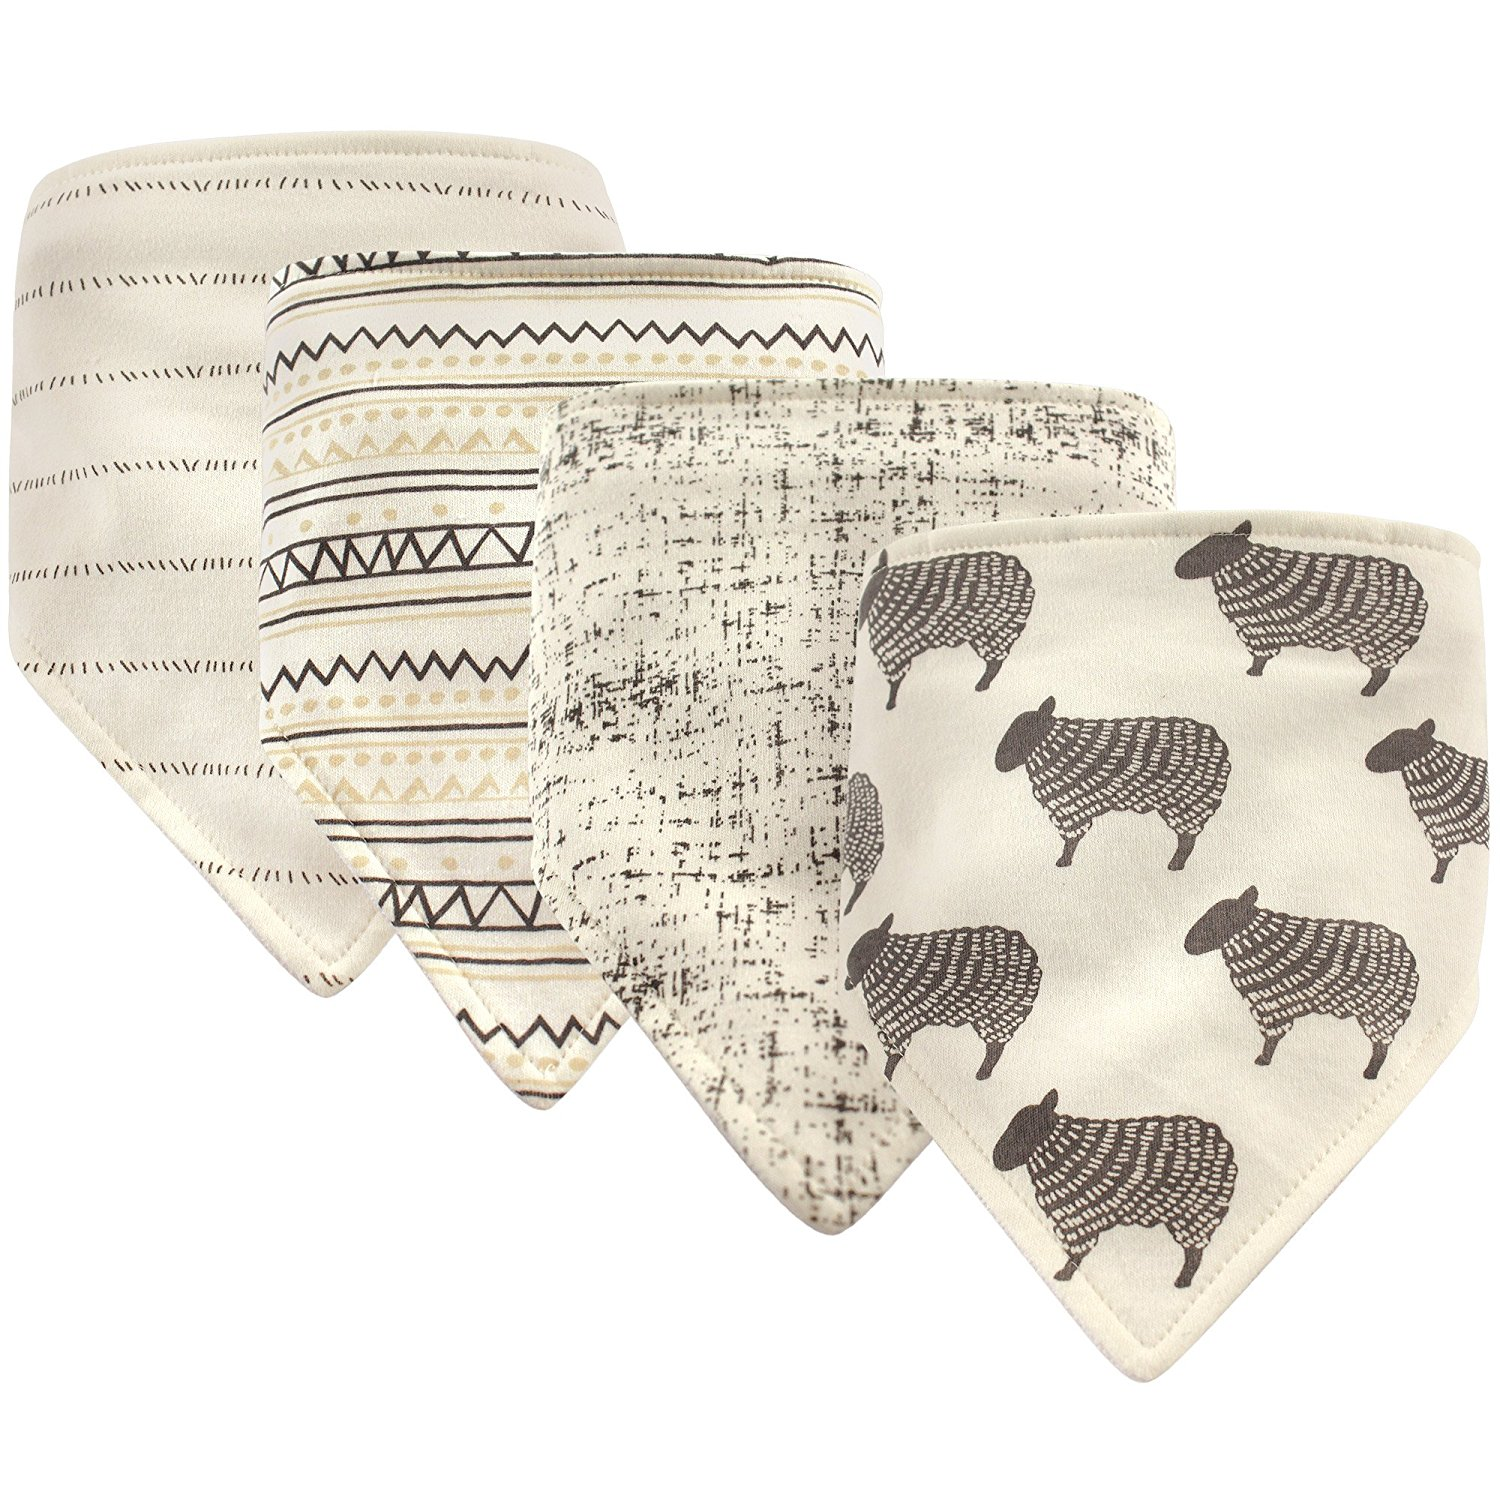 Bandana Bib, 4 Pack Accessory, sheep, One Size, Front: 100% Cotton, Back: 80% Cotton, 20% Polyester By Hudson Baby From USA